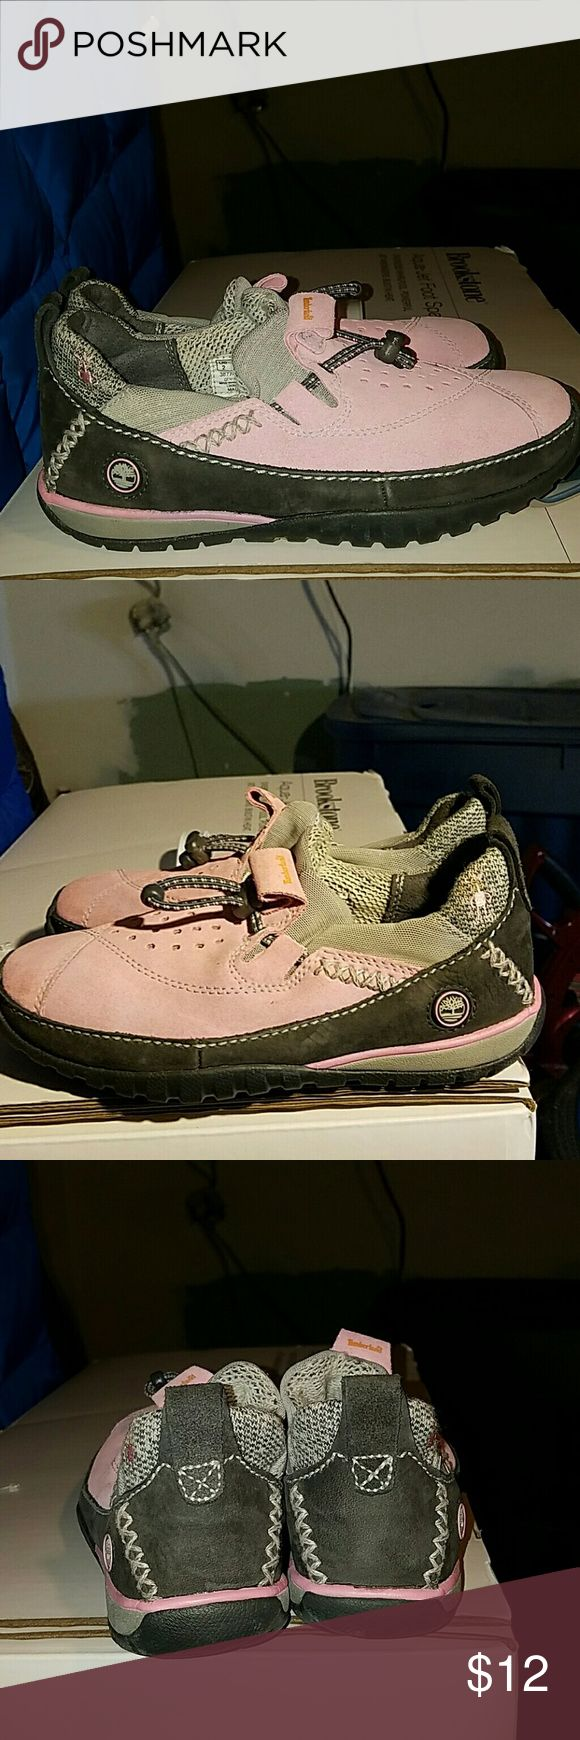 Girl timberlands Pink and grey timberland. Worn once Timberland Shoes